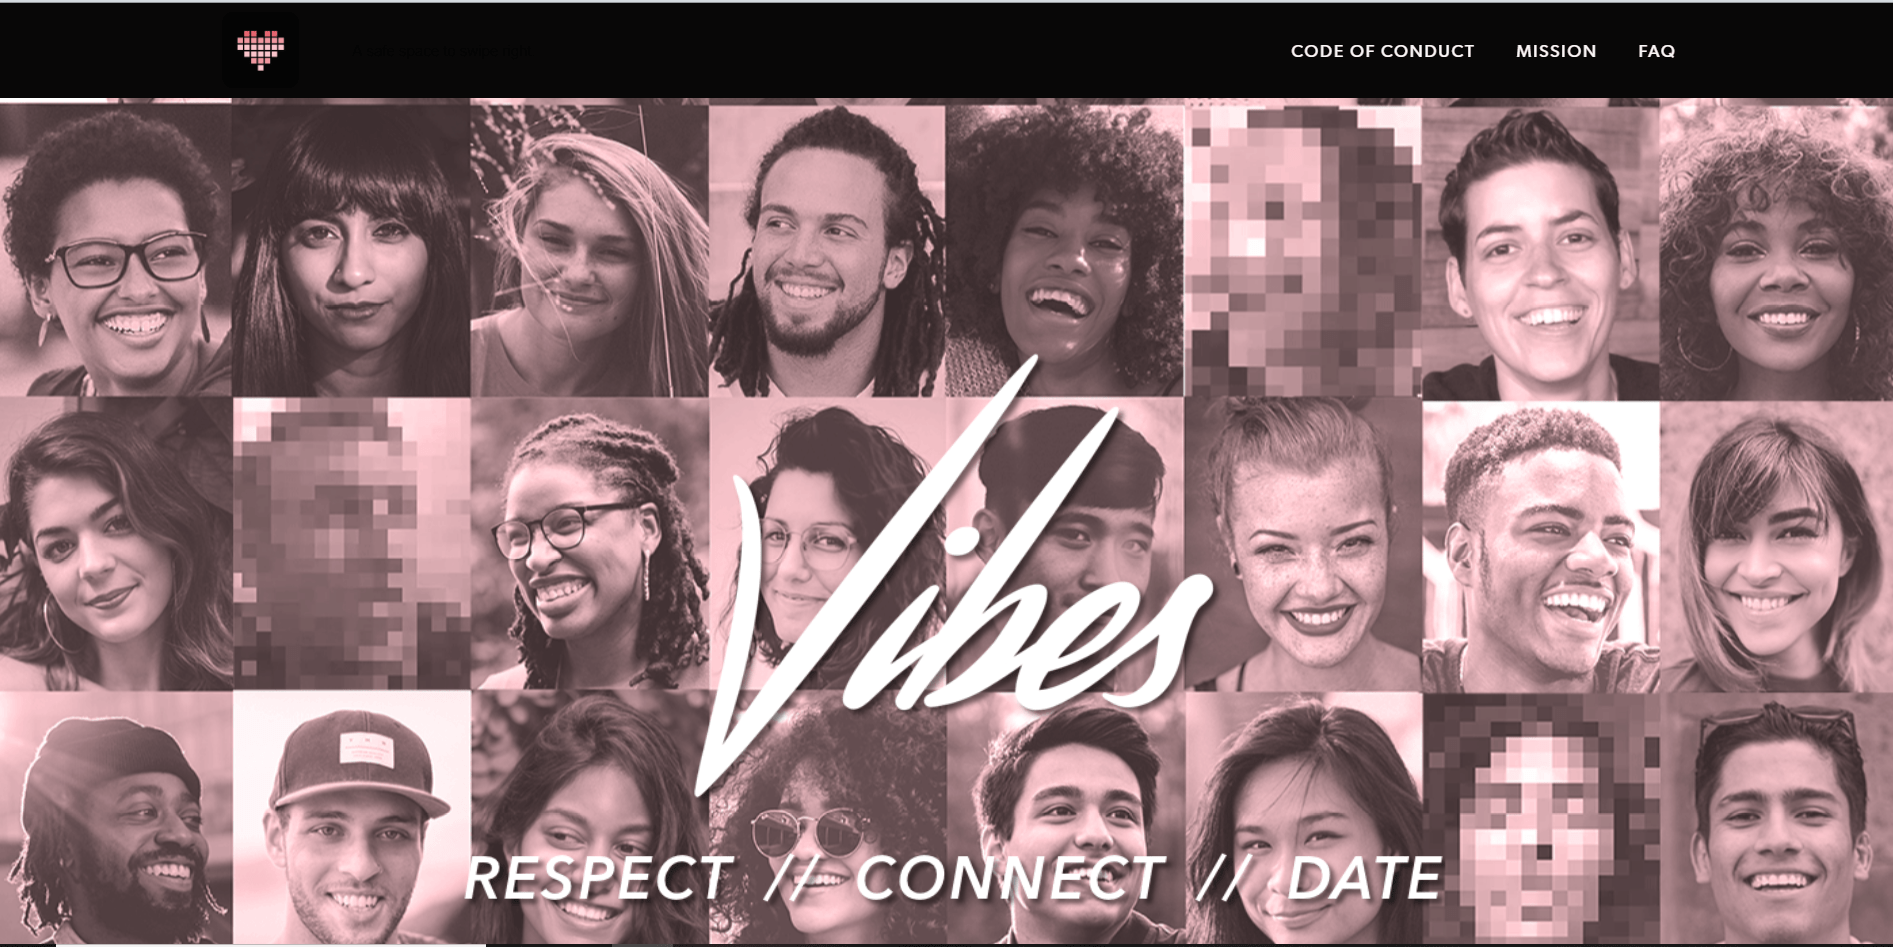 Dating App Vibes promises to provide a safe environment for love seekers